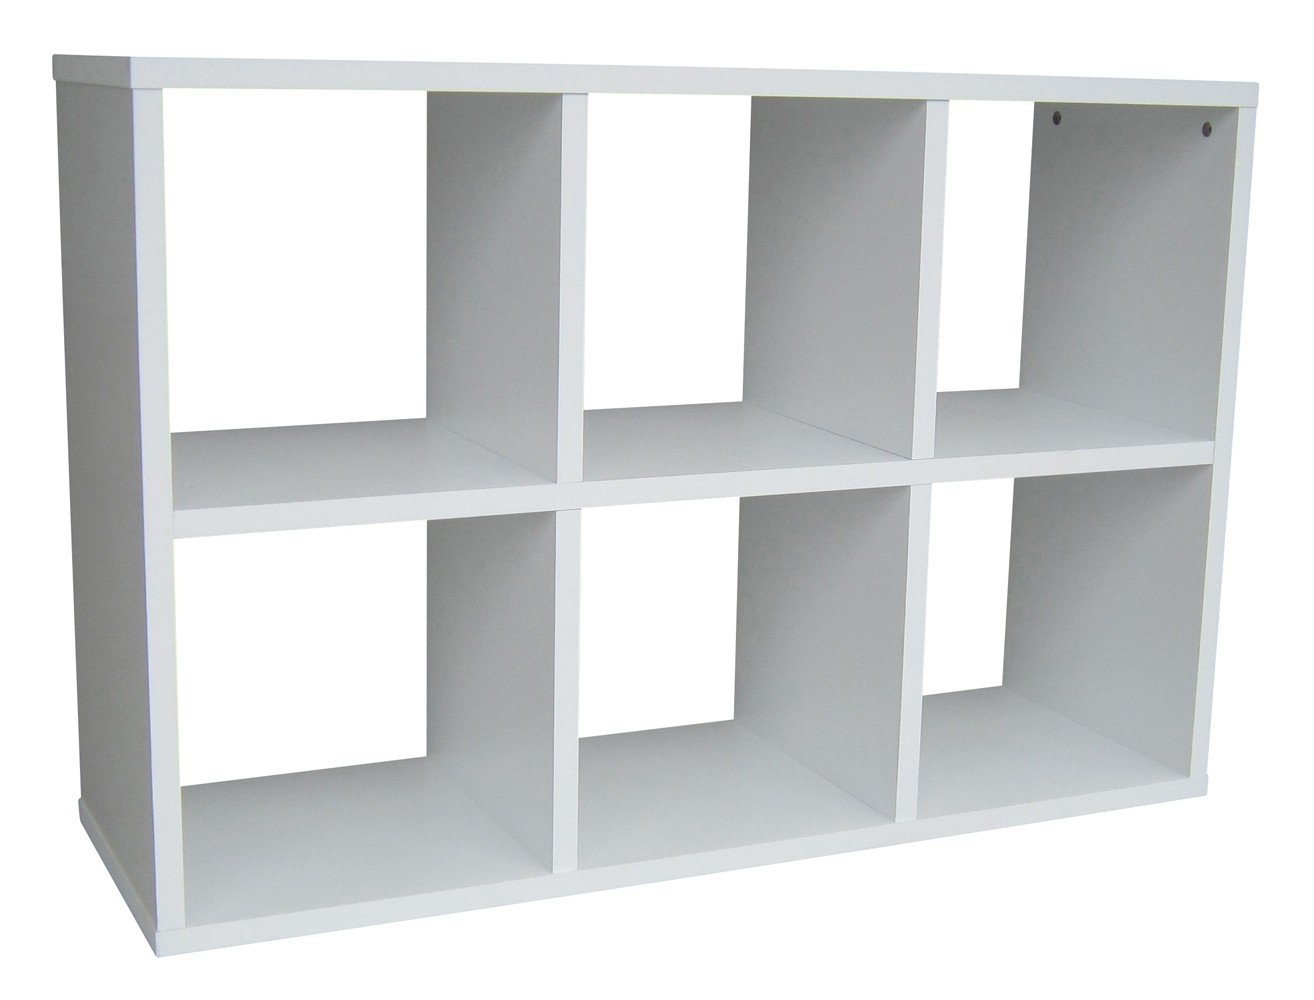 Rangement 6 cases blanc popsie for Meuble 6 cases ikea